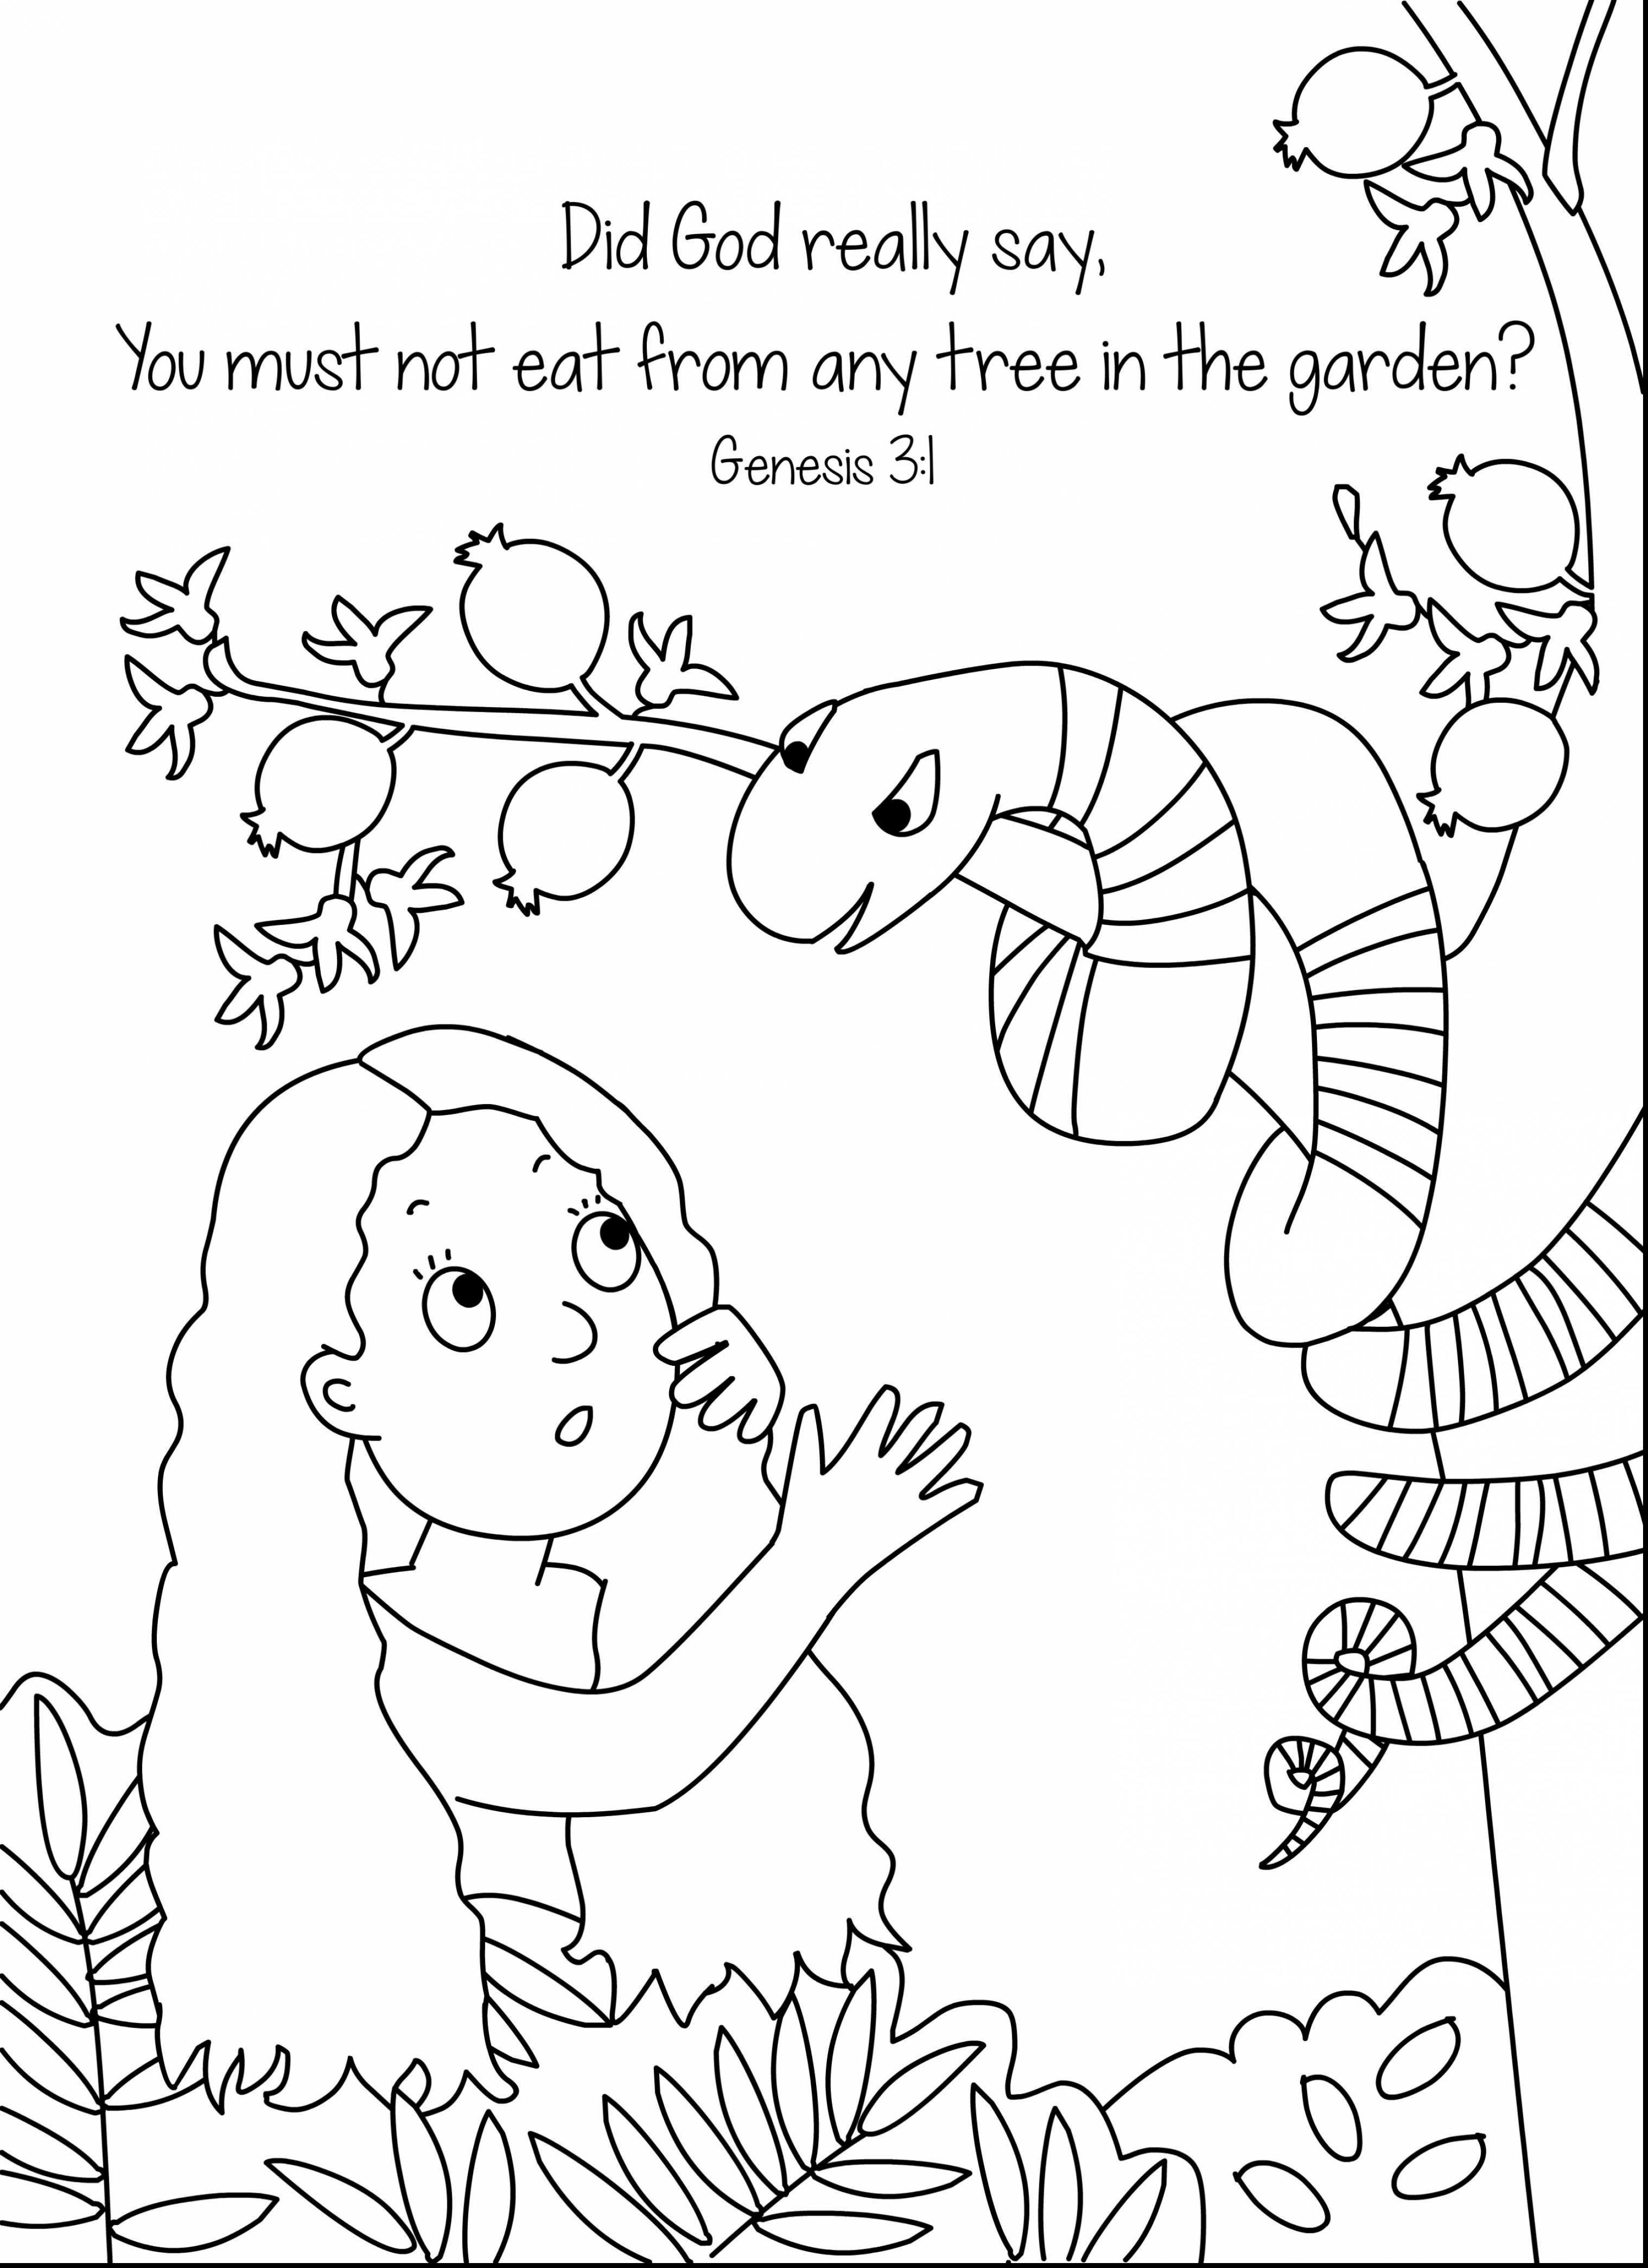 Et Coloring Pages At Getcolorings